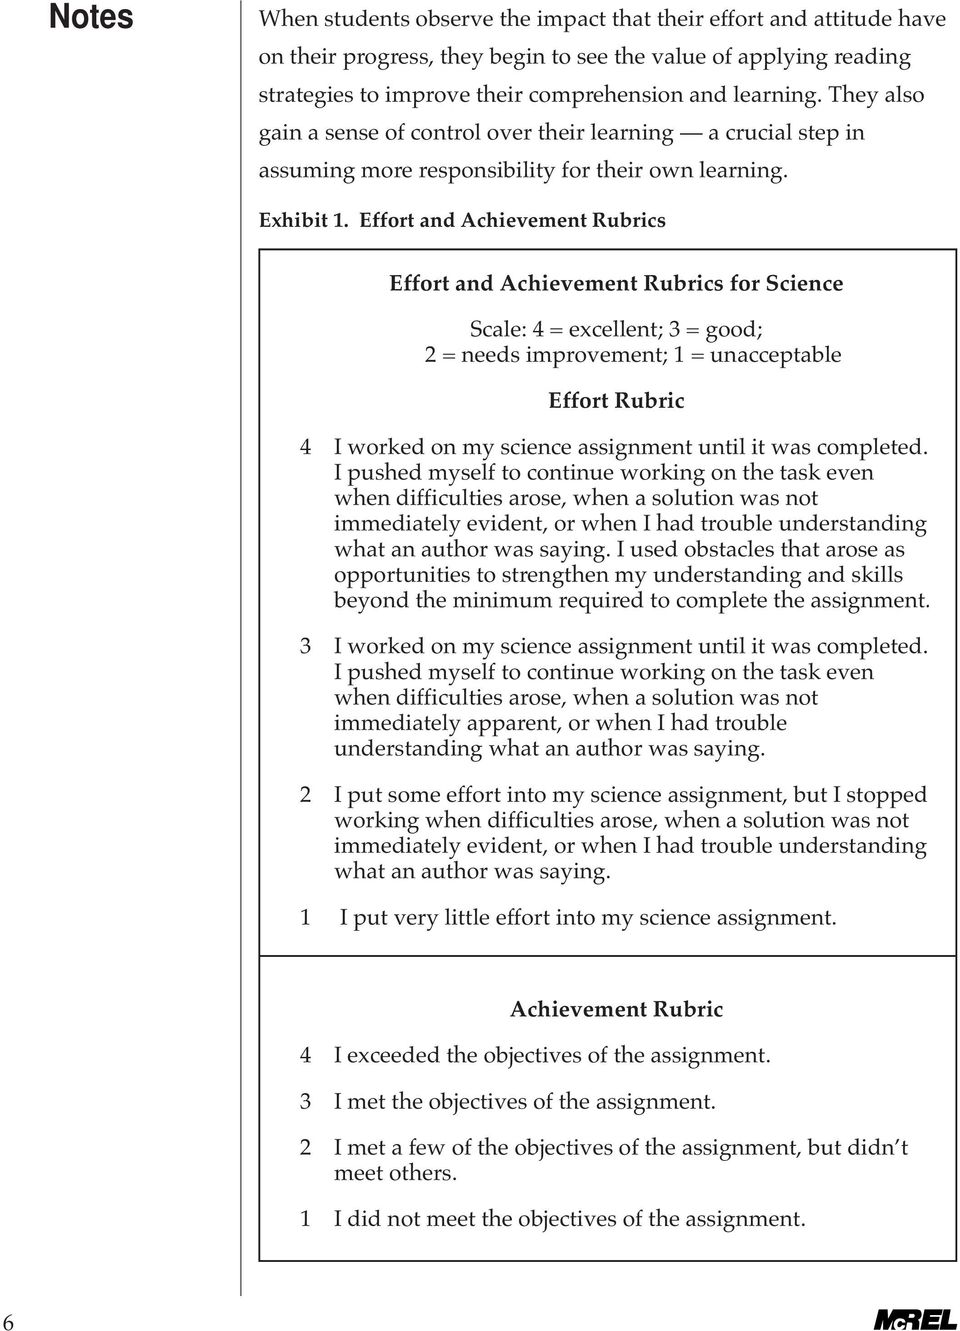 Effort and Achievement Rubrics Effort and Achievement Rubrics for Science Scale: 4 = excellent; 3 = good; 2 = needs improvement; 1 = unacceptable Effort Rubric 4 I worked on my science assignment